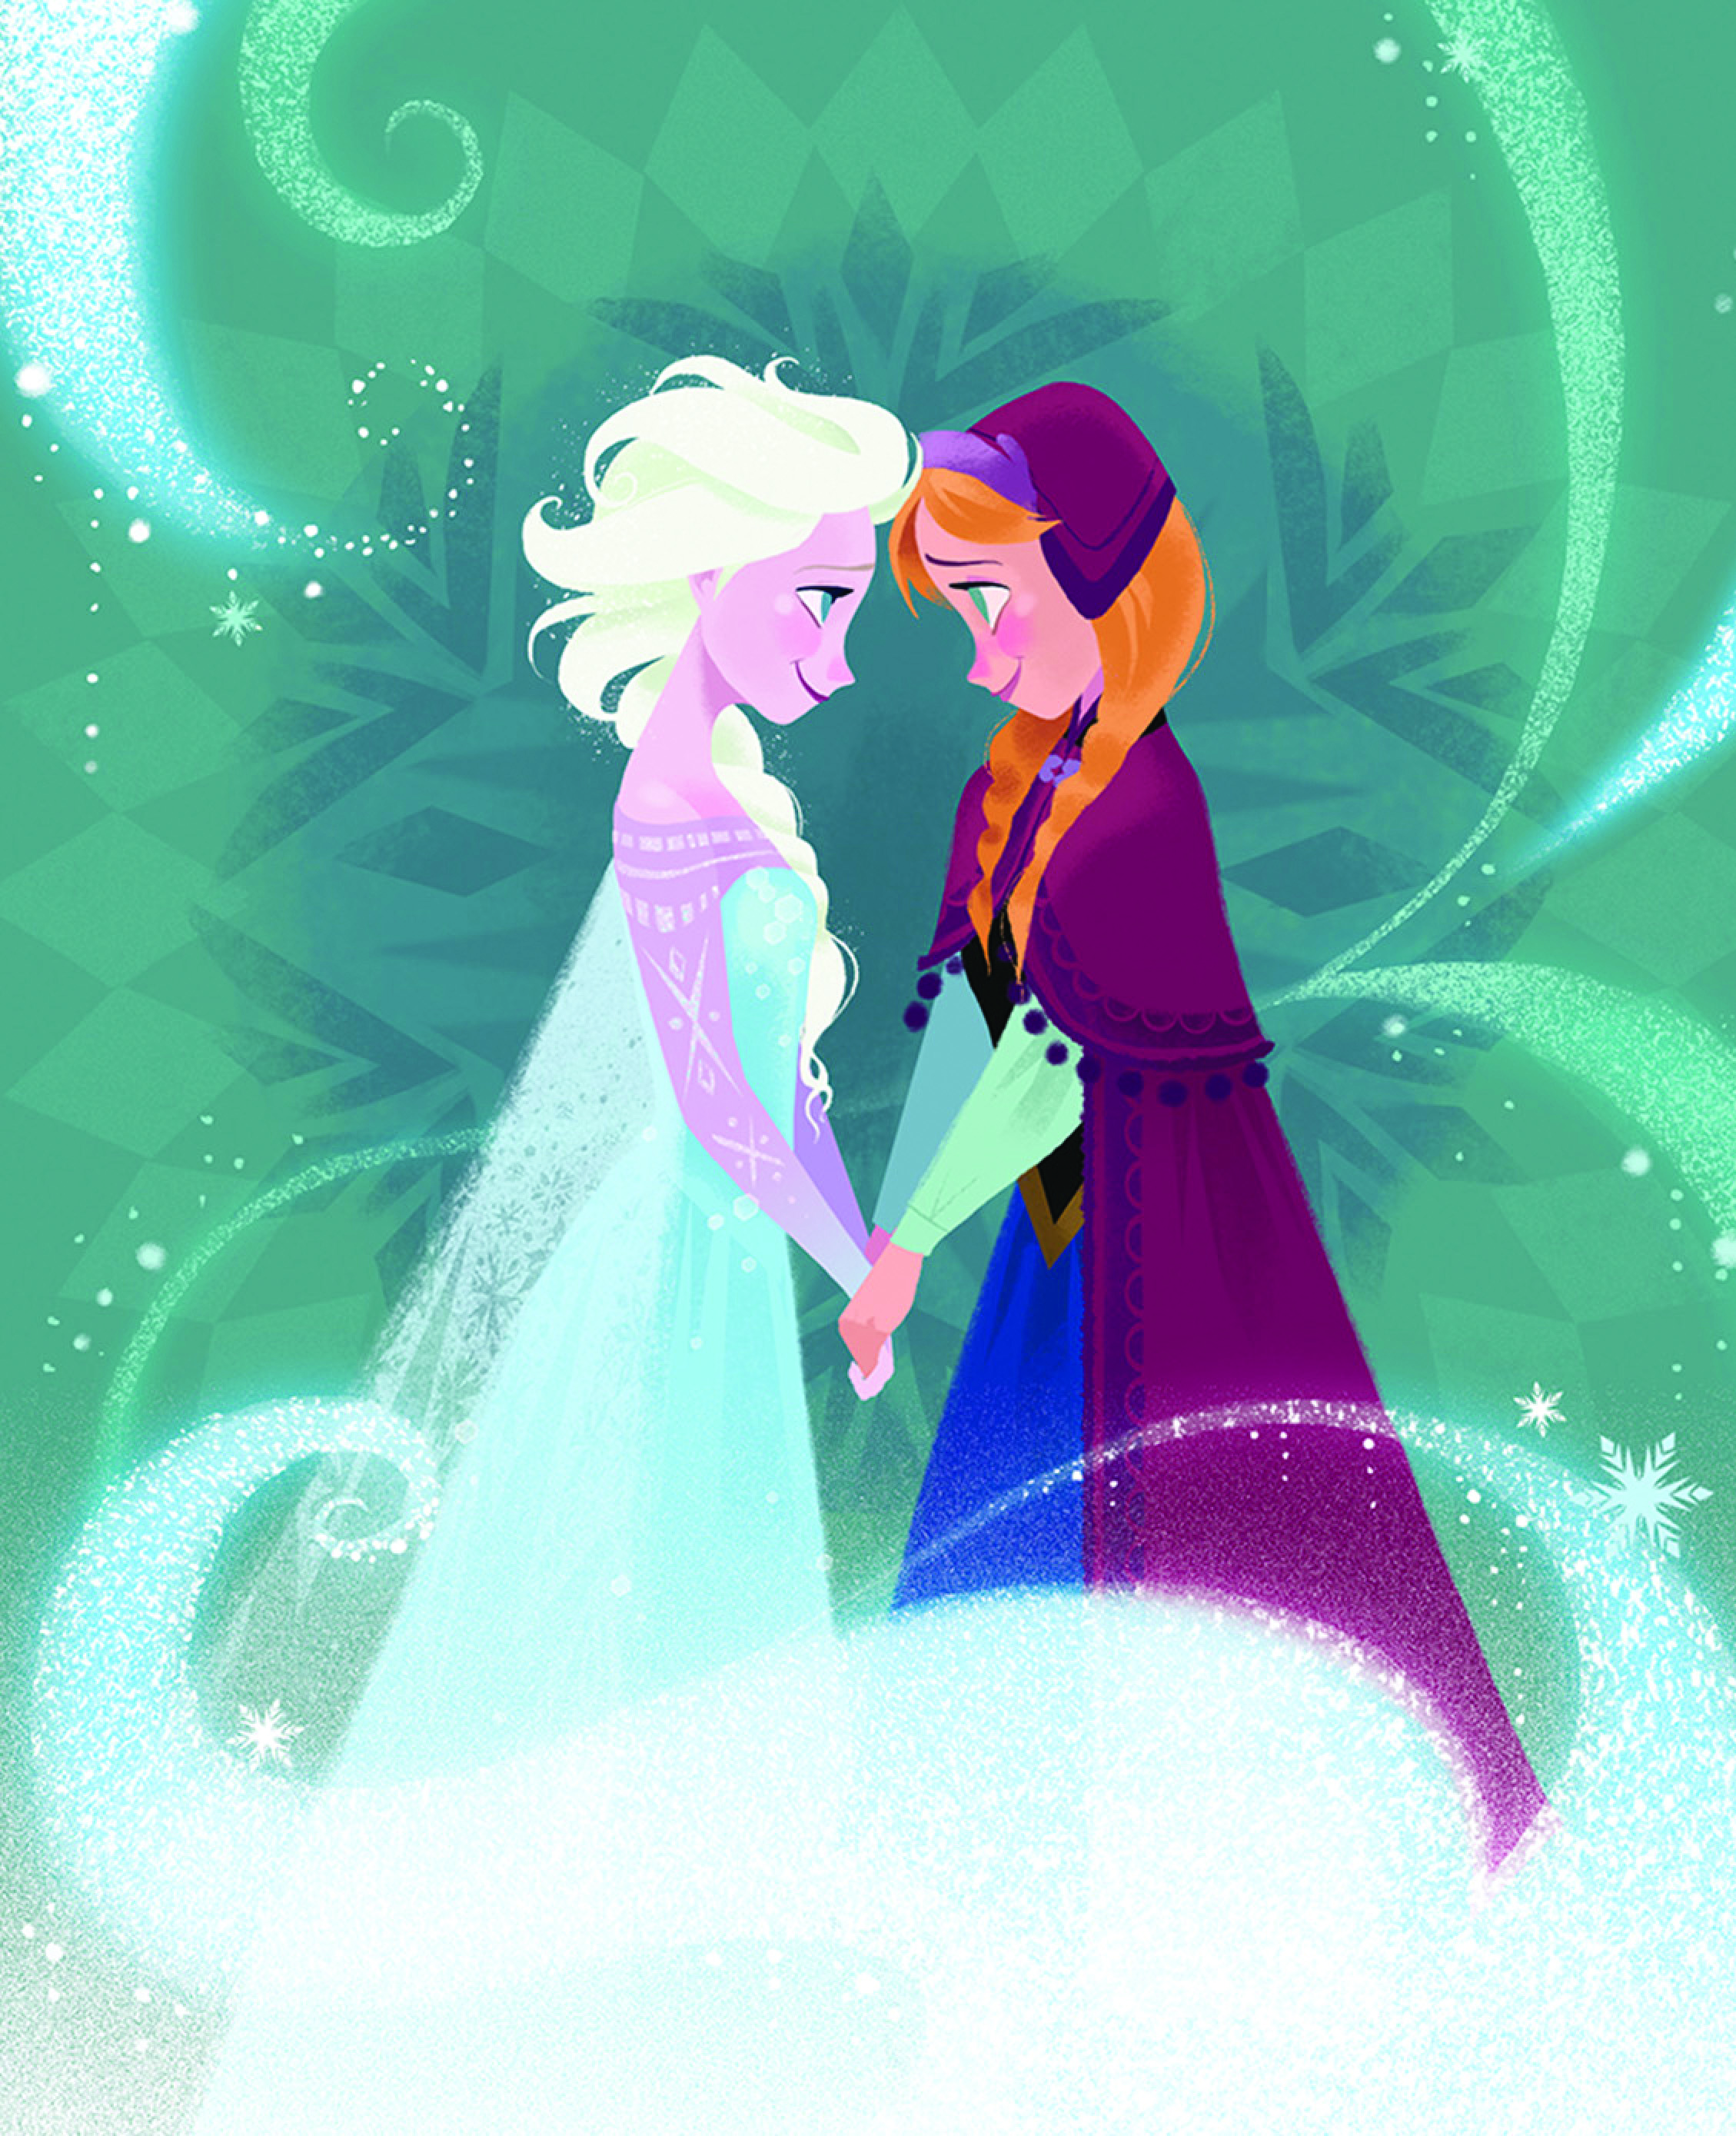 brittney_lee_conceptart_la_reine_des_neiges_2013_disney